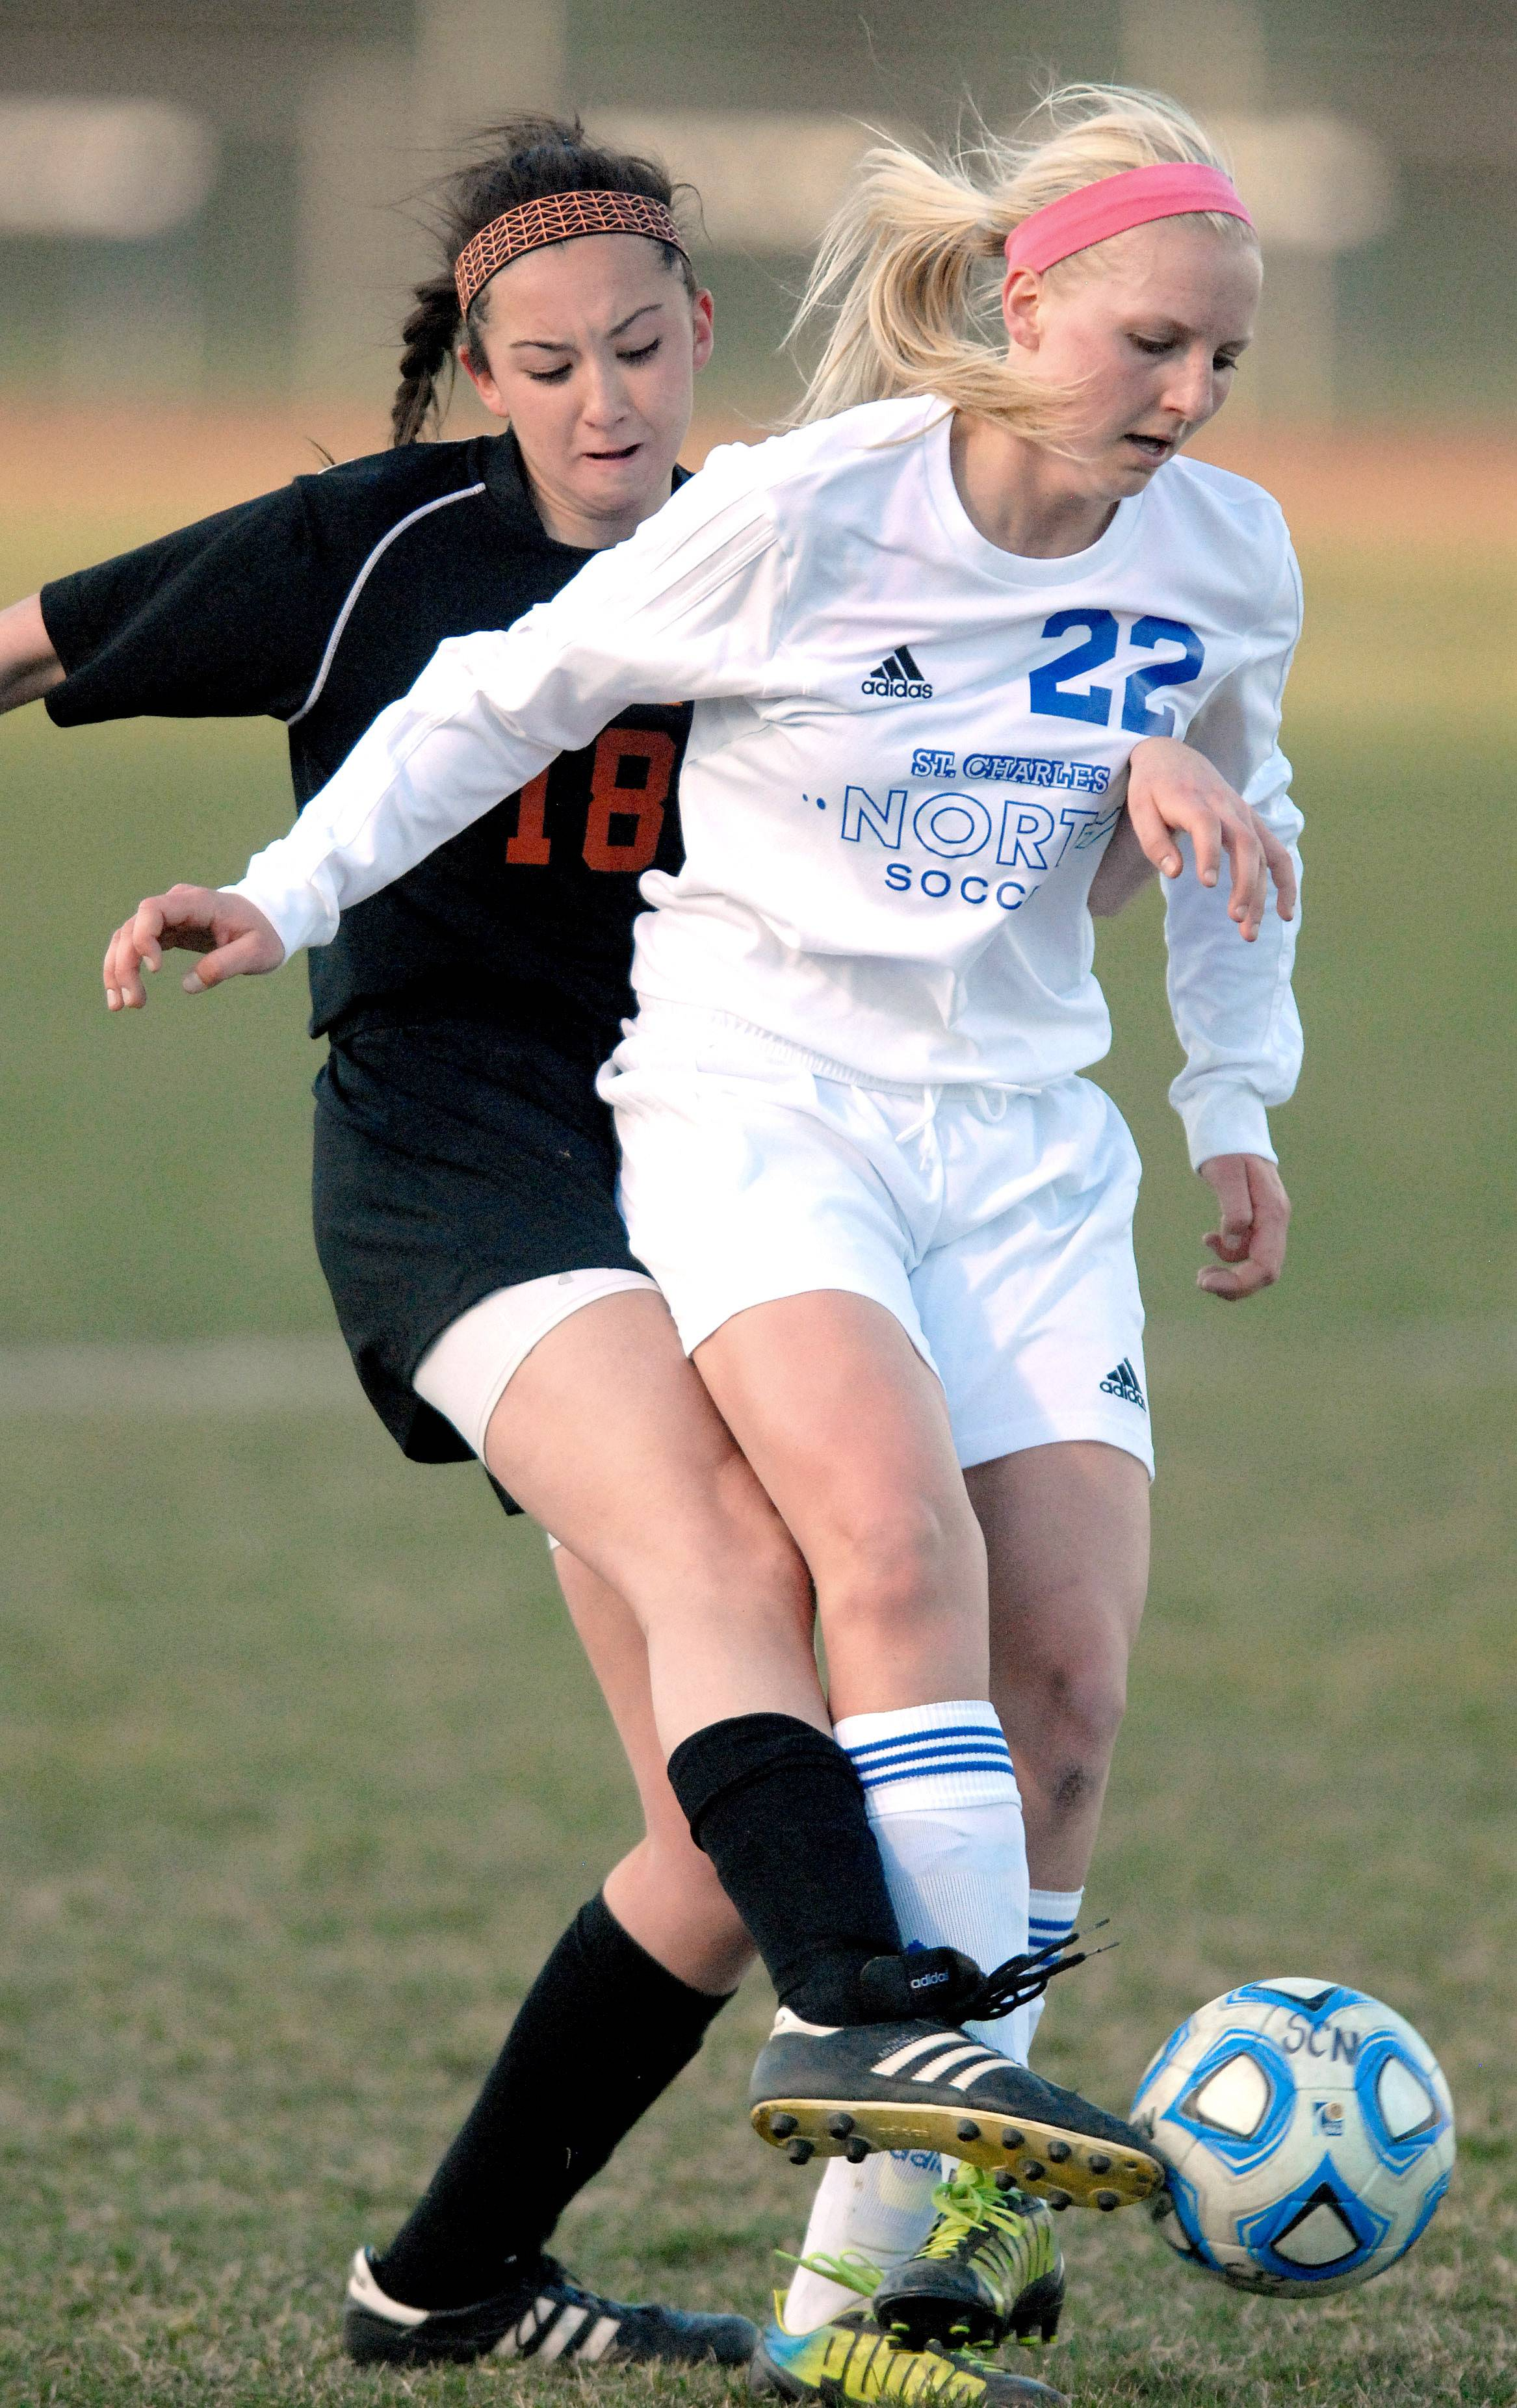 St. Charles East's Mallory Mollenhauer, left, and St. Charles North's Sophie Pohl fight for the ball in the first half on Tuesday.